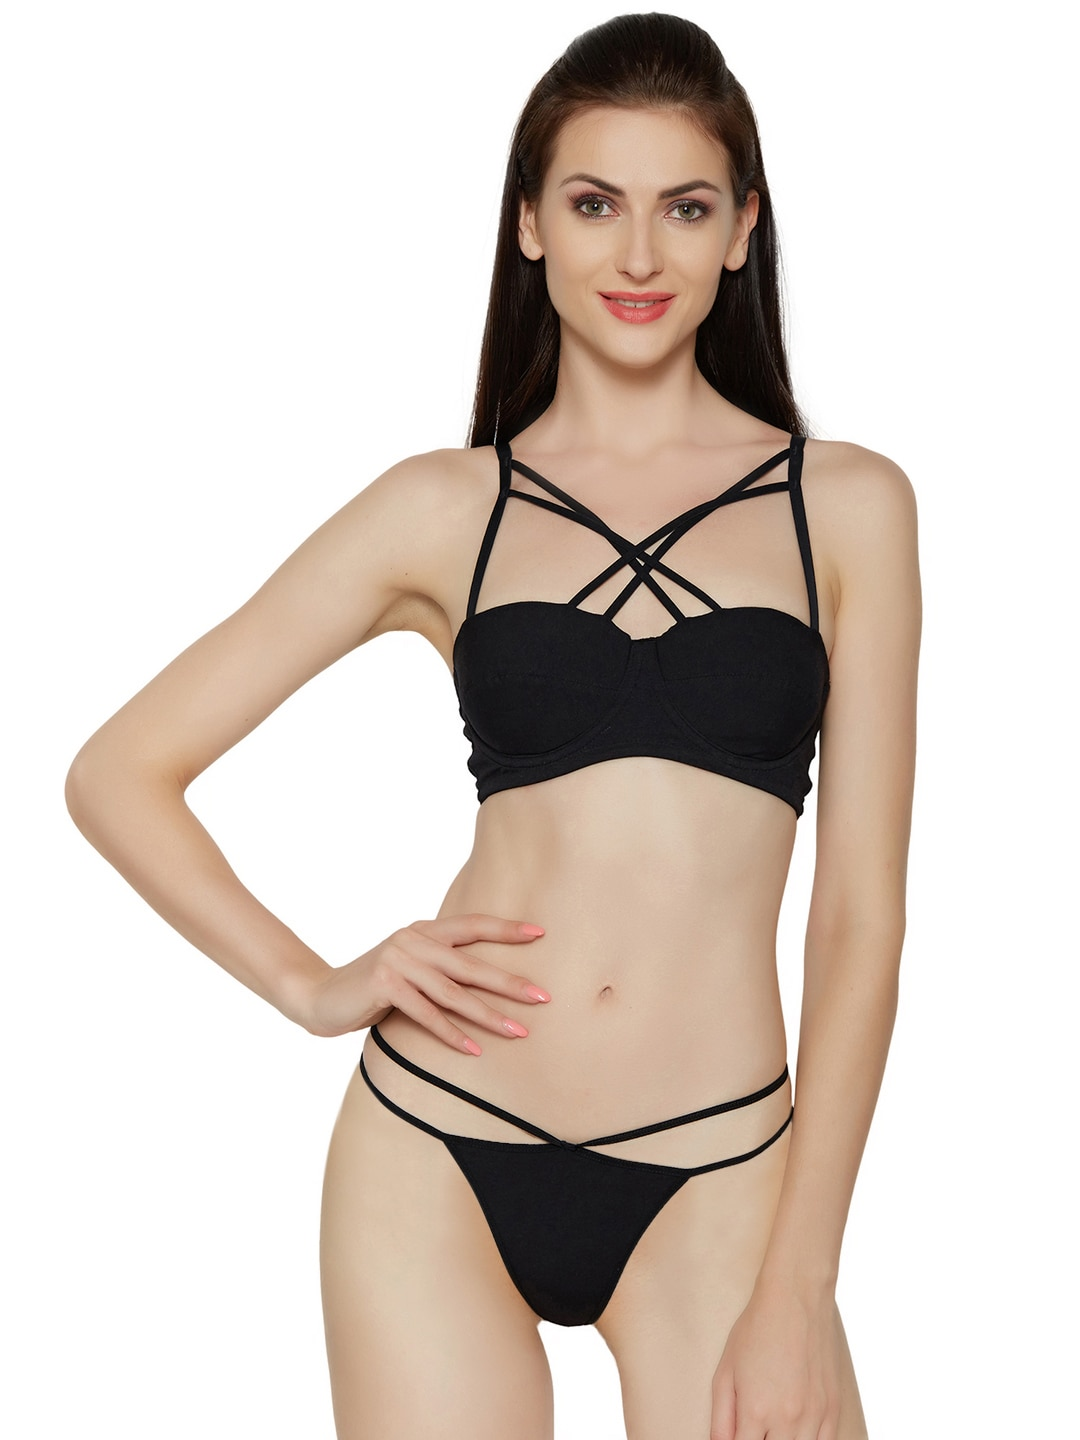 111b953cc7671 Stayfree Pads Jackets Women Women Lingerie Set - Buy Stayfree Pads Jackets  Women Women Lingerie Set online in India